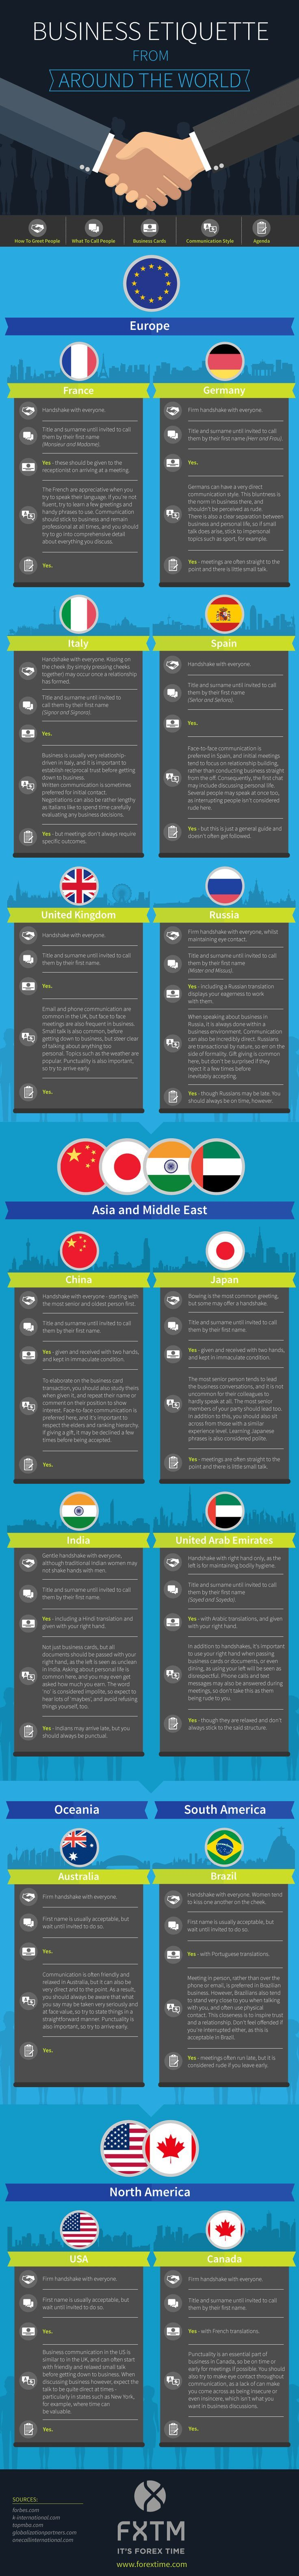 business etiquette from around the world infographic  online  business etiquette from around the world infographic business travel